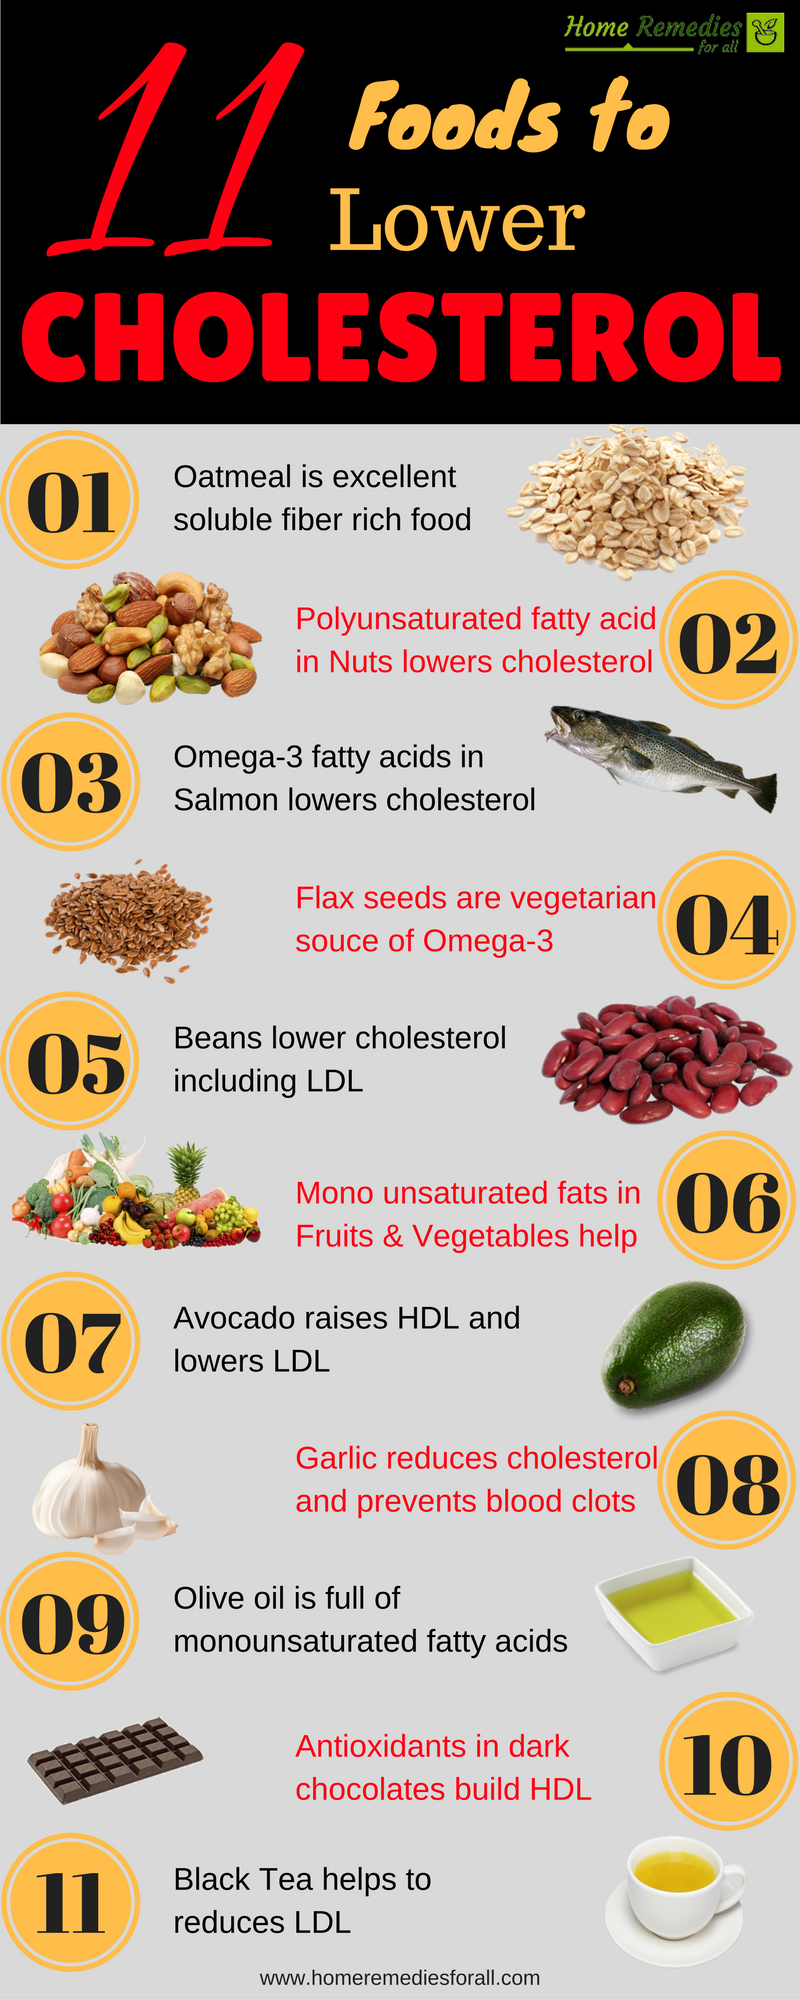 11 Foods To Lower Cholesterol Naturally (With Images